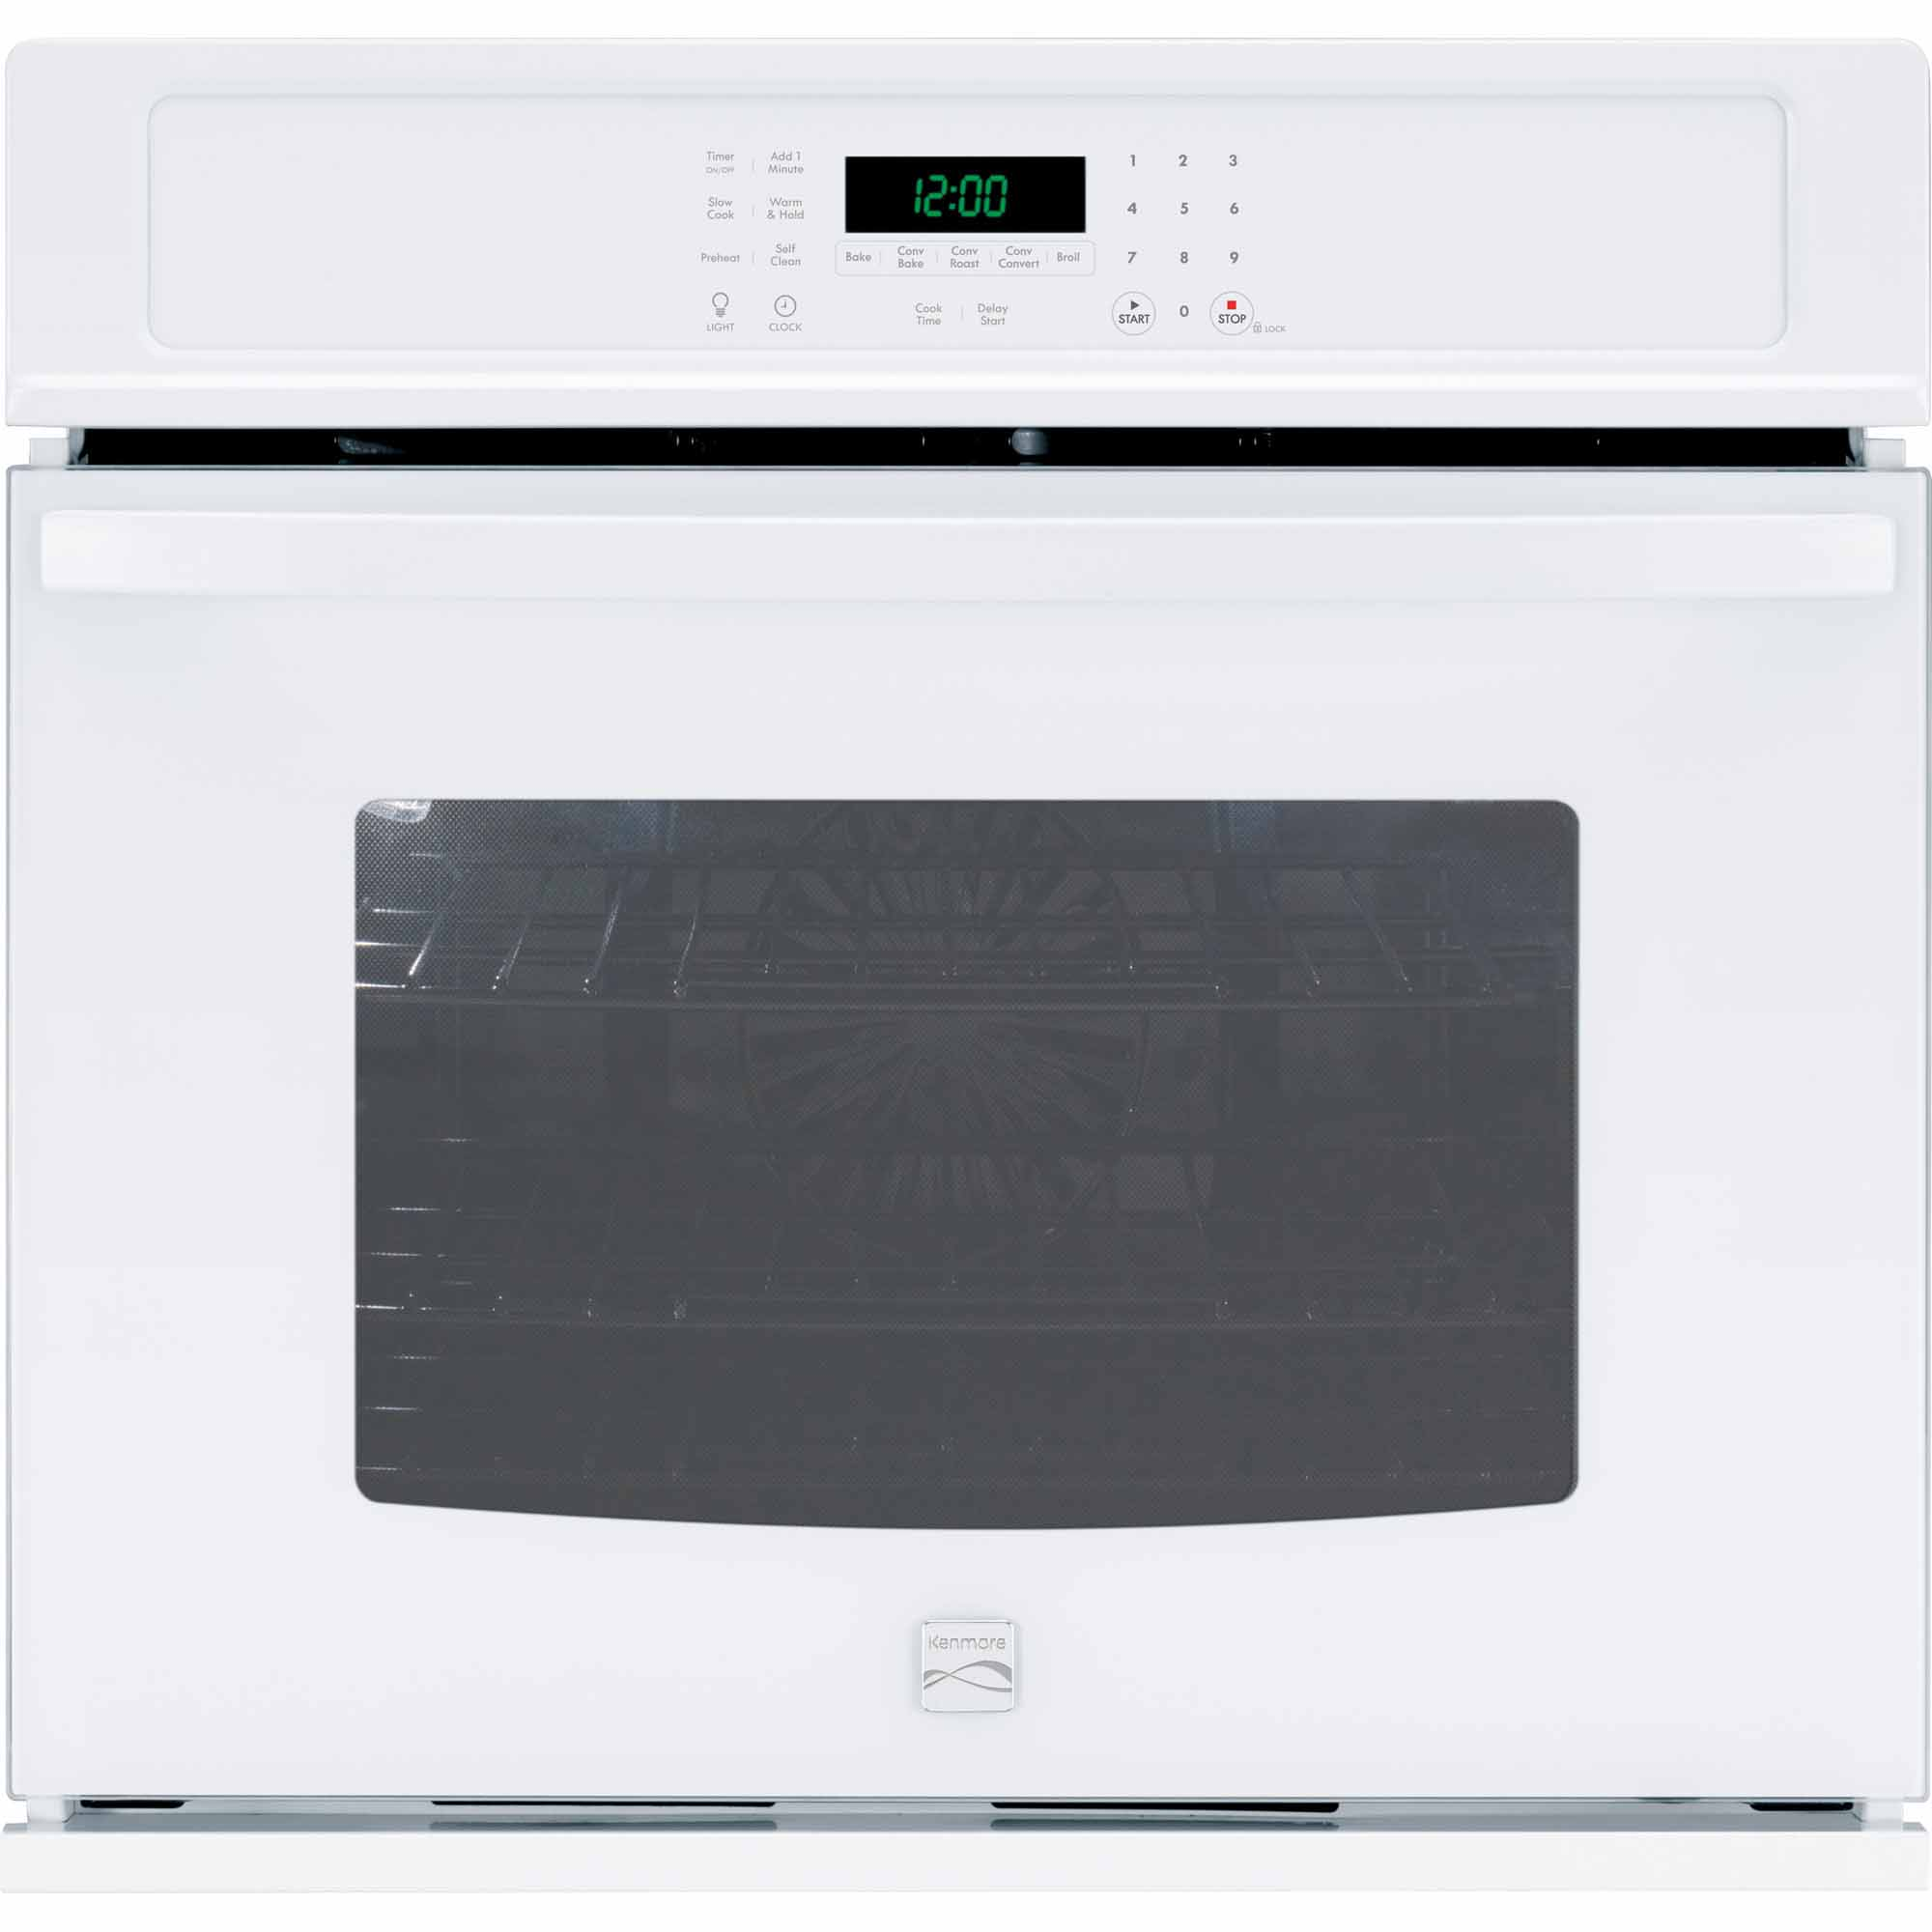 Kenmore 49512 30 Electric Self-Clean Single Wall Oven /w Convection - White